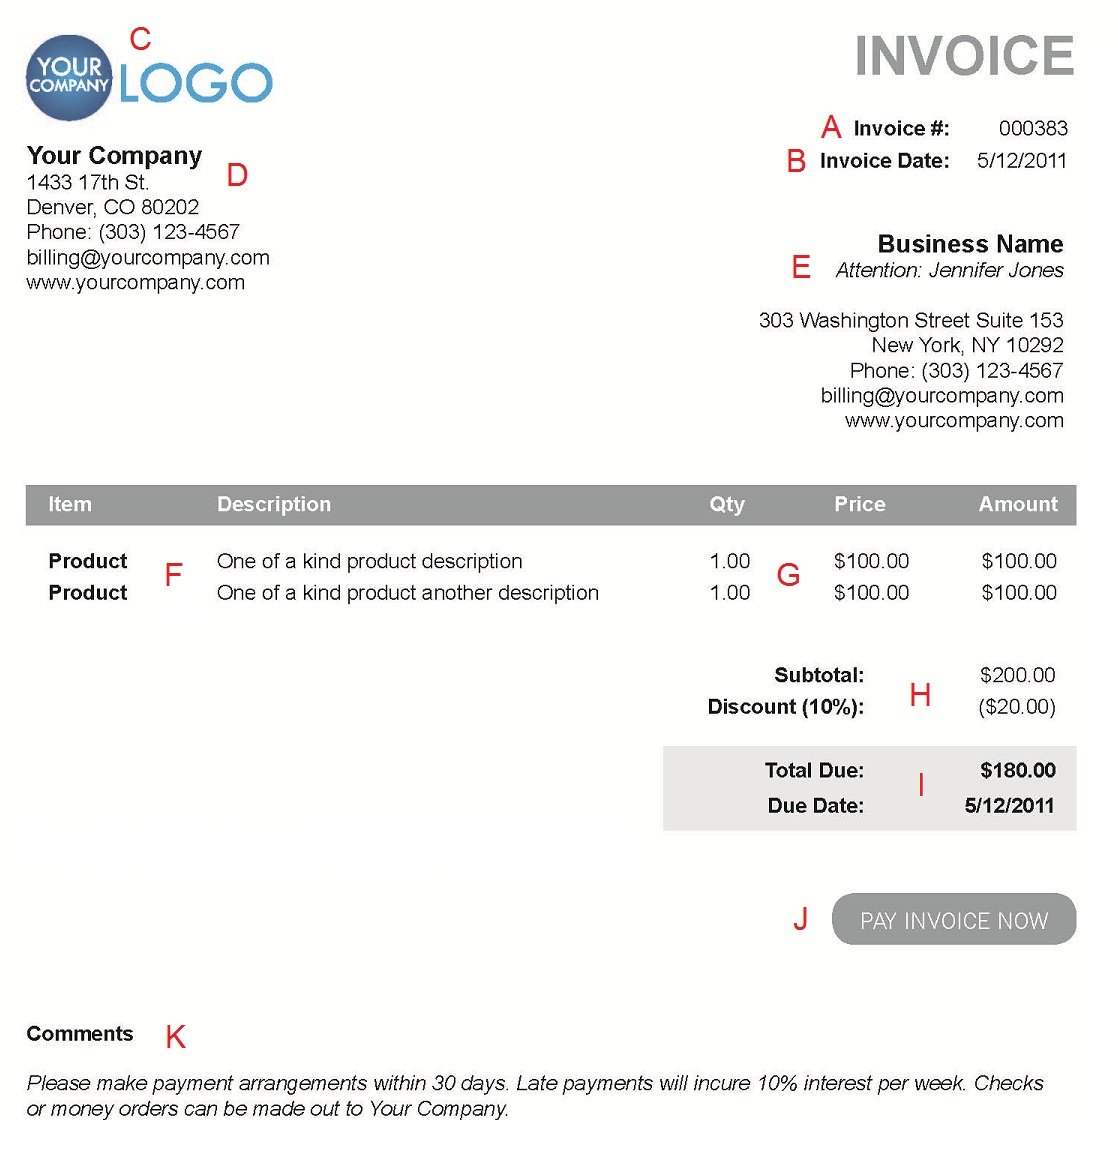 Aaaaeroincus  Terrific The  Different Sections Of An Electronic Payment Invoice With Fair A  With Endearing Best Invoicing Software For Mac Also What Is Invoice Price On A New Car In Addition Website Design Invoice And Are Paypal Invoices Safe As Well As Creating An Invoice In Quickbooks Additionally Easy Invoices From Paysimplecom With Aaaaeroincus  Fair The  Different Sections Of An Electronic Payment Invoice With Endearing A  And Terrific Best Invoicing Software For Mac Also What Is Invoice Price On A New Car In Addition Website Design Invoice From Paysimplecom